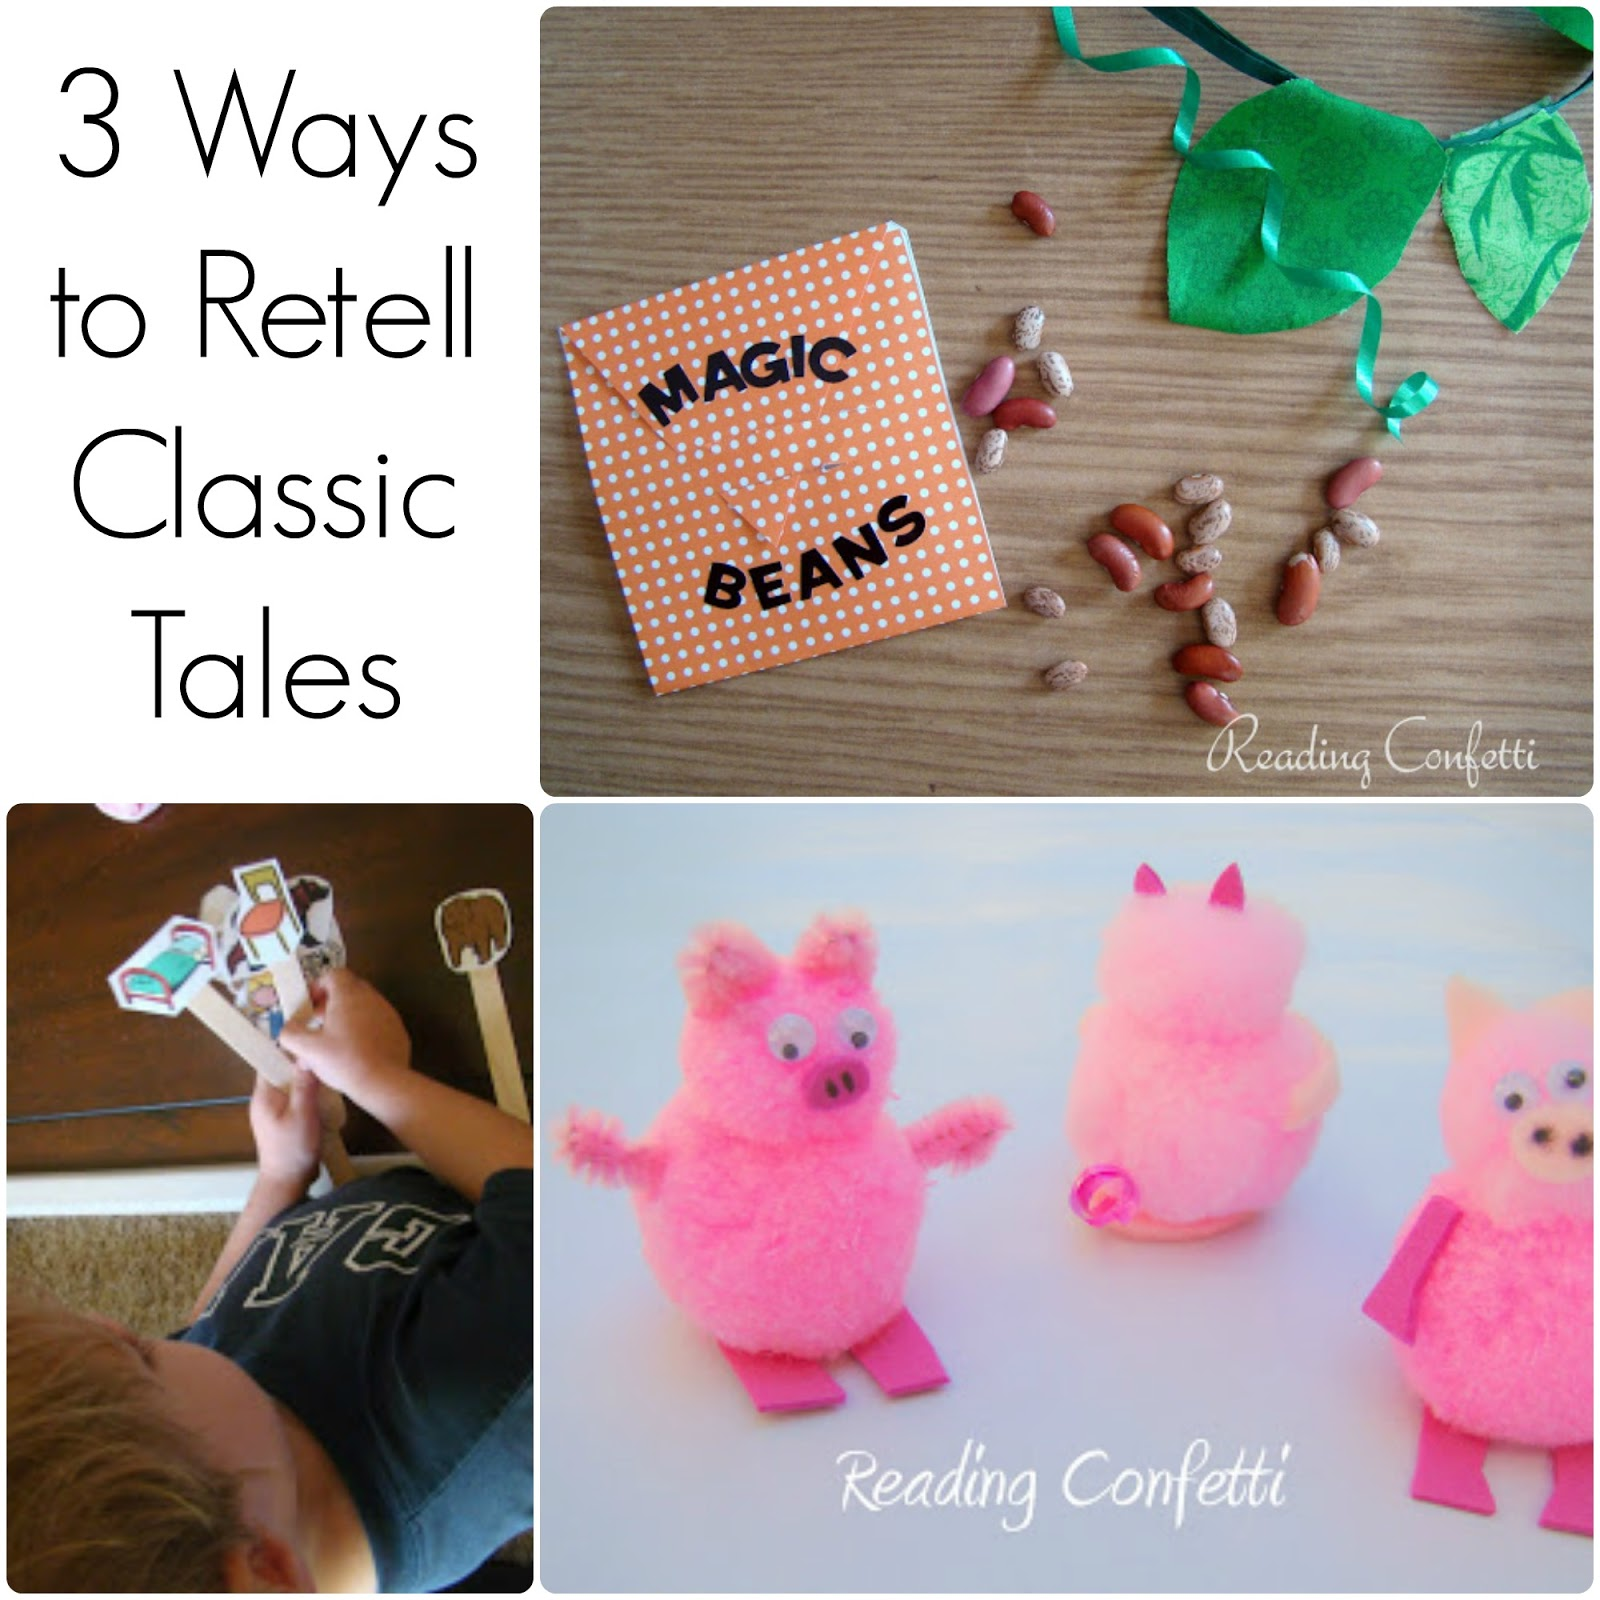 3 ways to retell classic tales